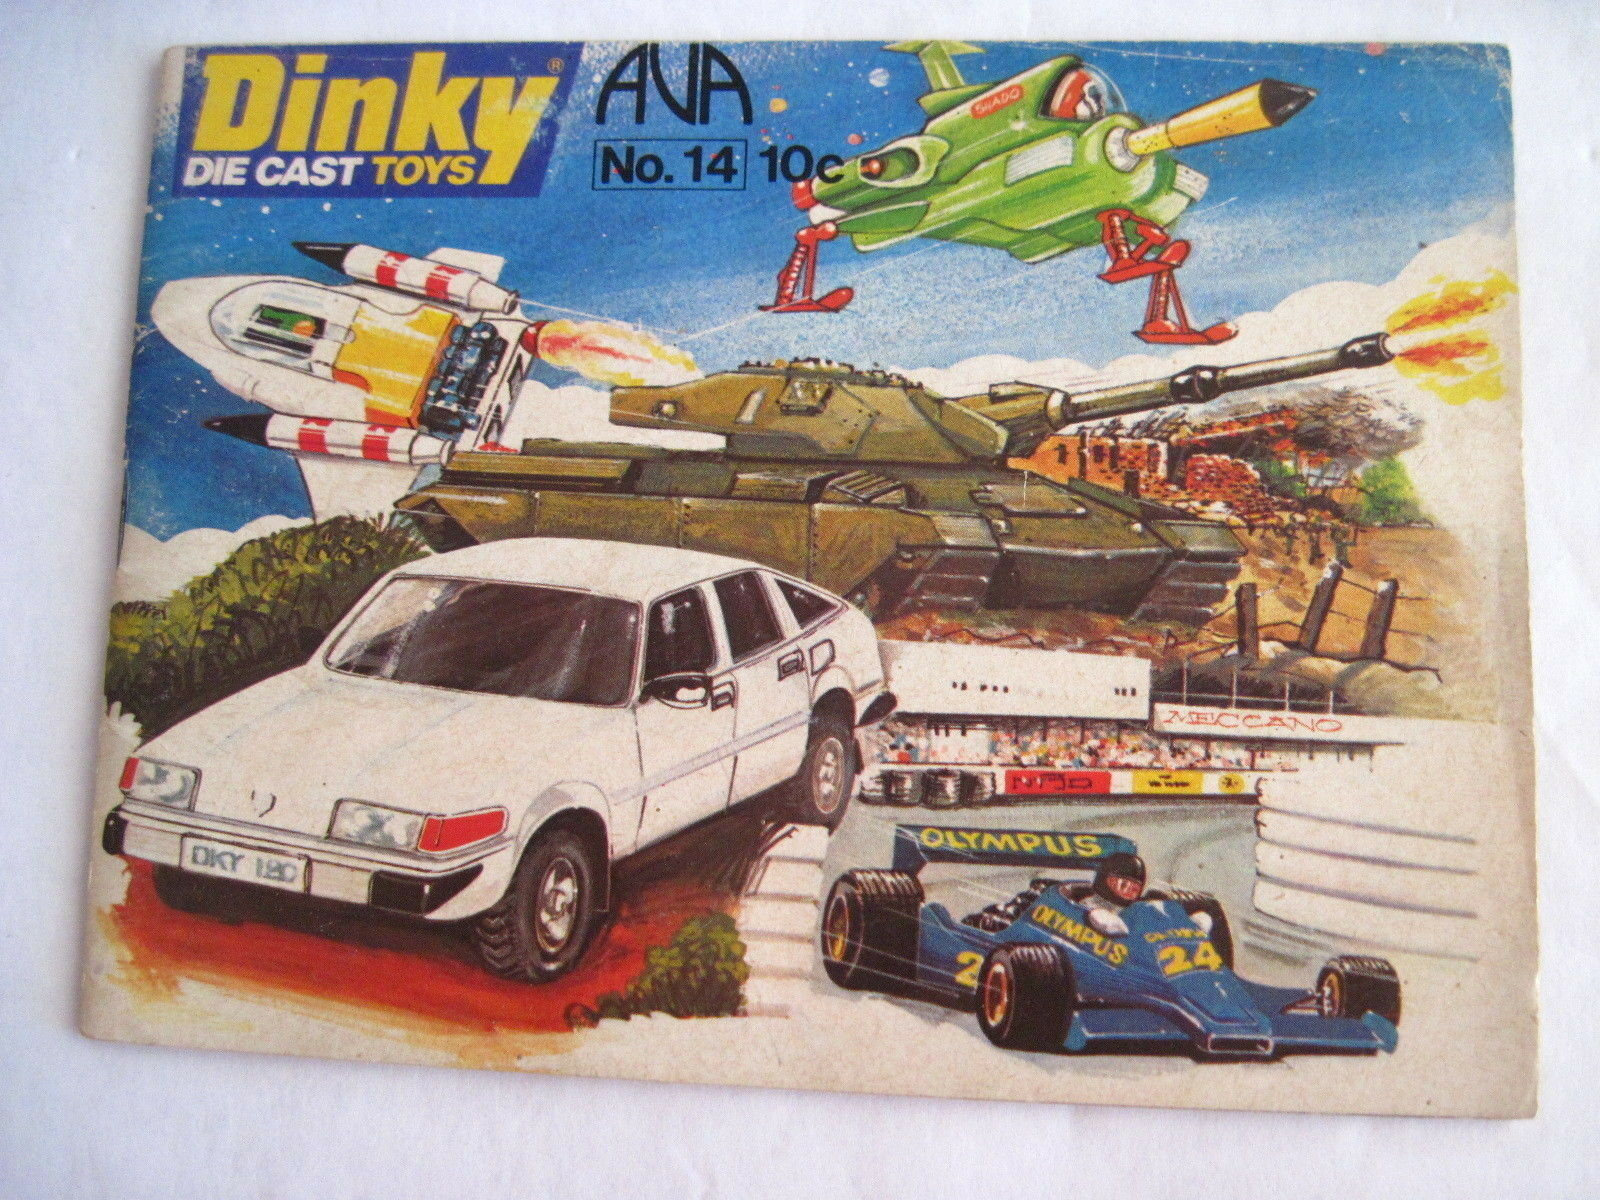 Fantastic 1978  Dinky  Die Cast Toys Catalog - w Spaceships, Army Tanks & Cars